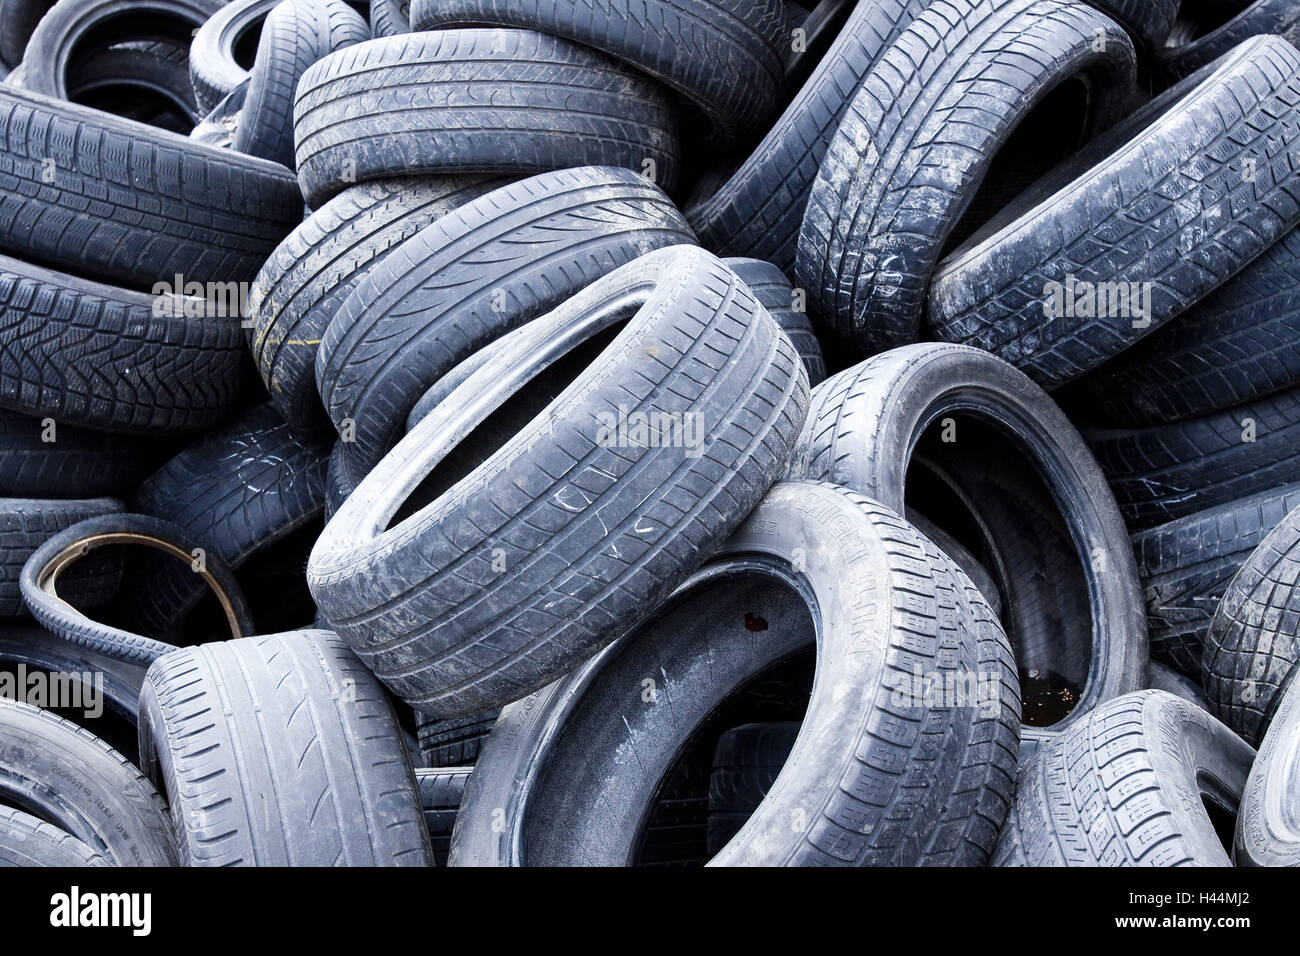 Automobile tyres, old, disposal, waste, garbage, tyre, batch